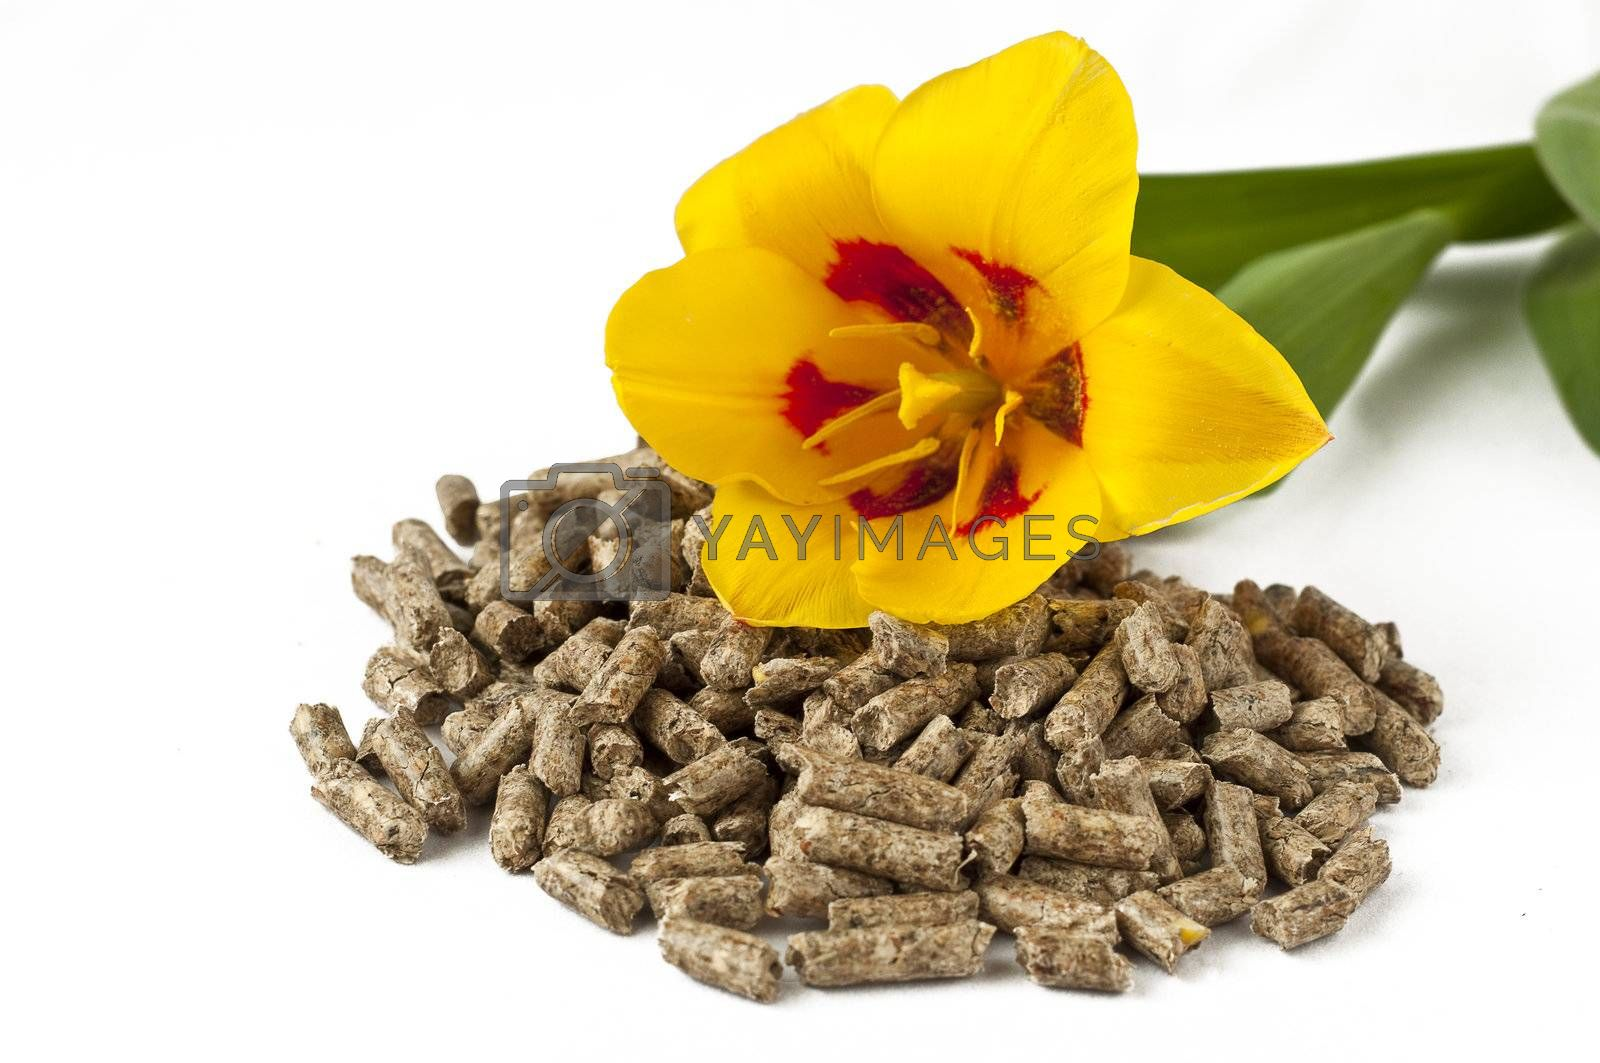 pellet and spring flowers on a white background